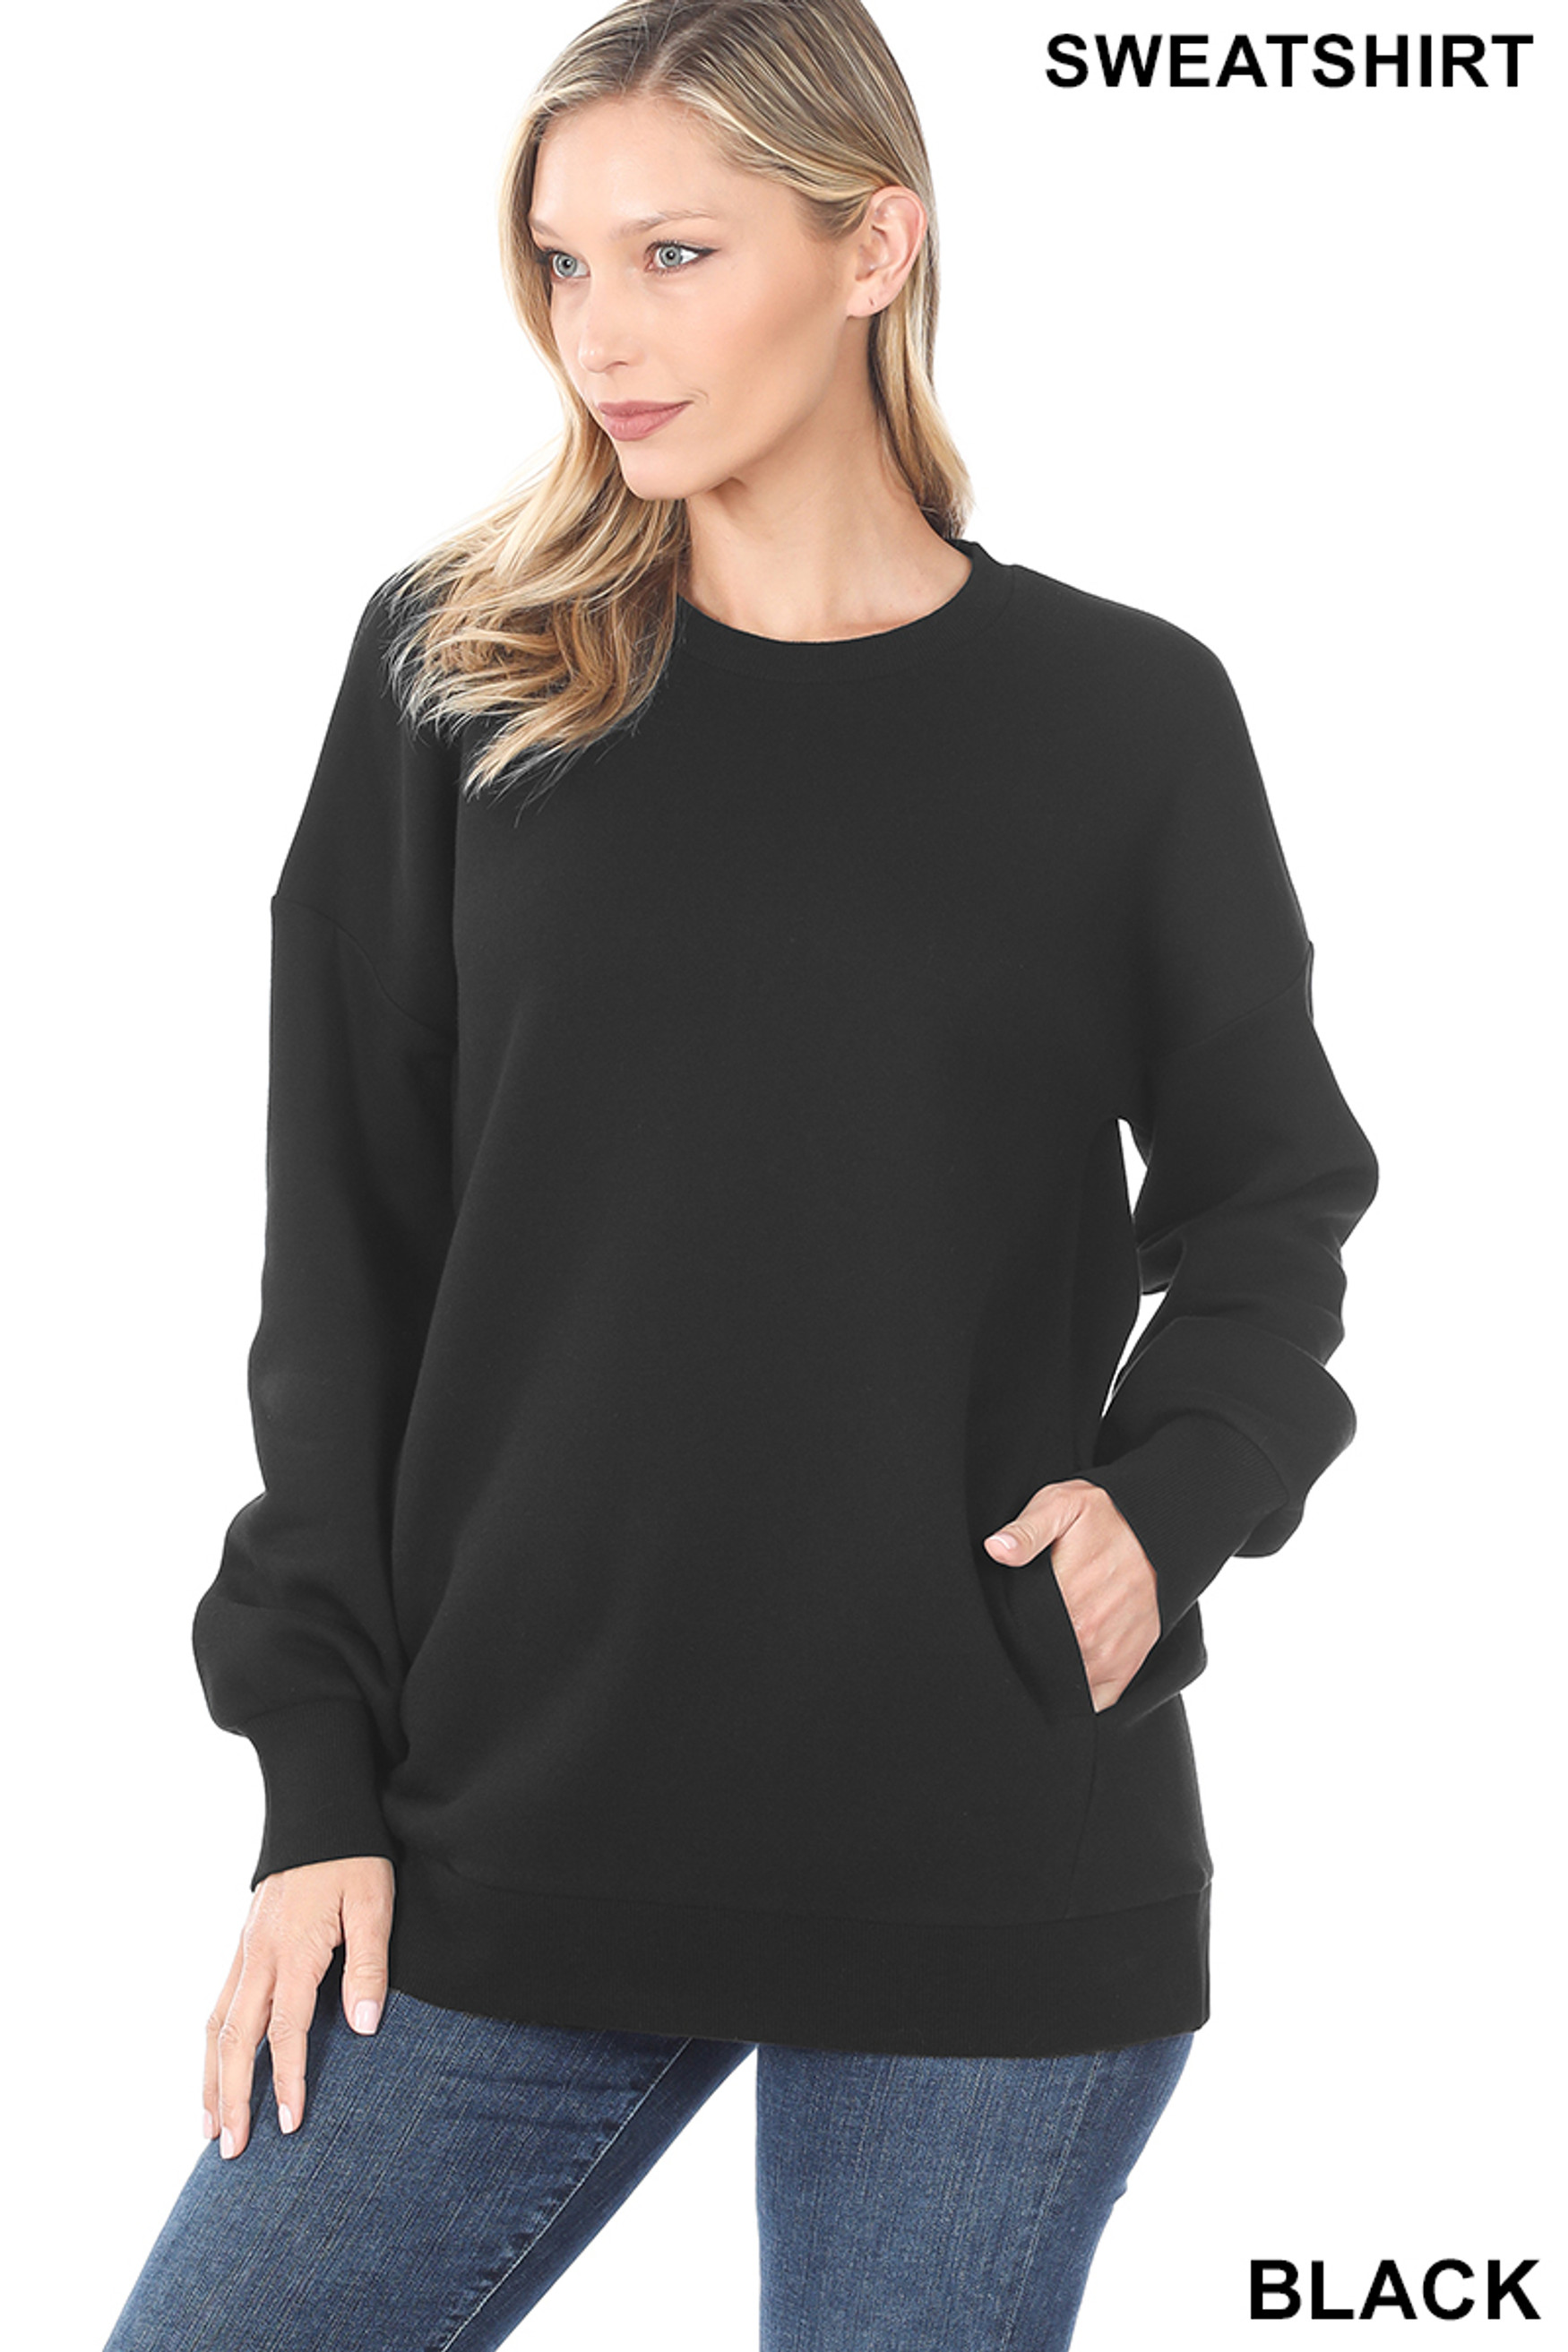 Front image of Black Round Crew Neck Sweatshirt with Side Pockets